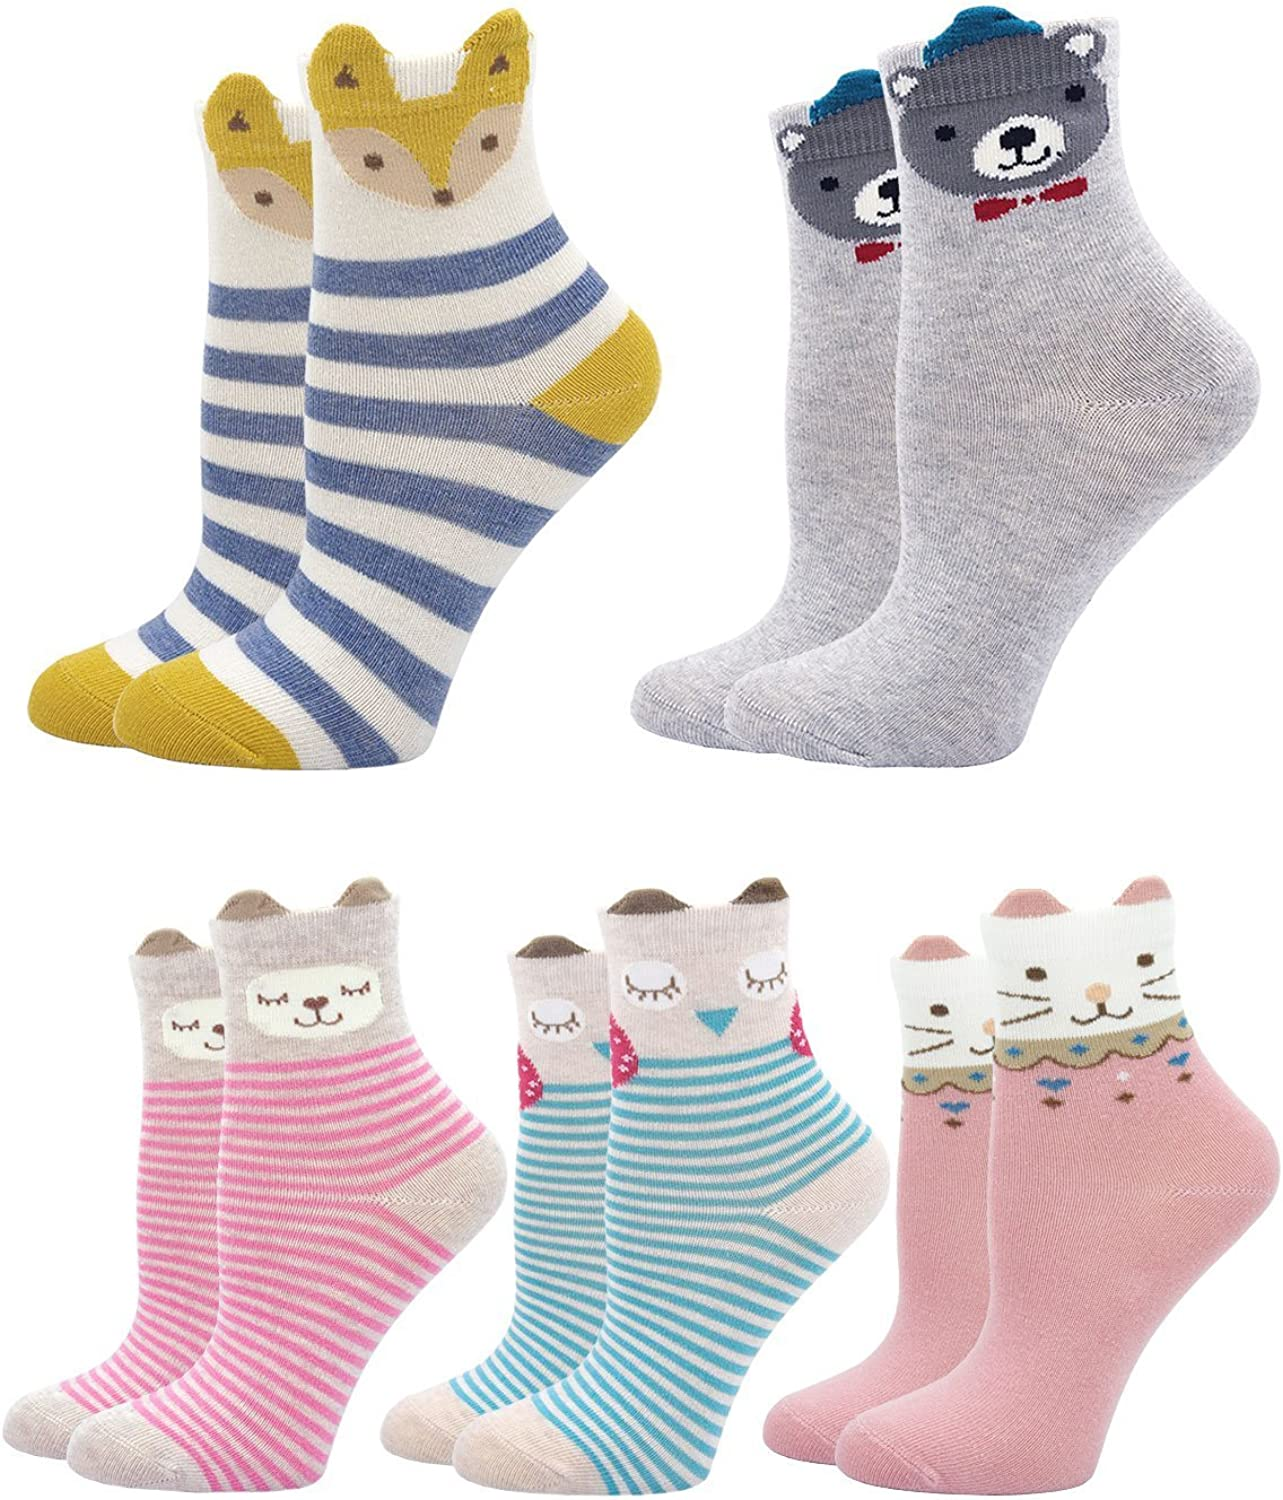 Kids Socks Cotton Animal Cute Funny Baby Toddler Ankle Sock for Boys and Girls 5 pair